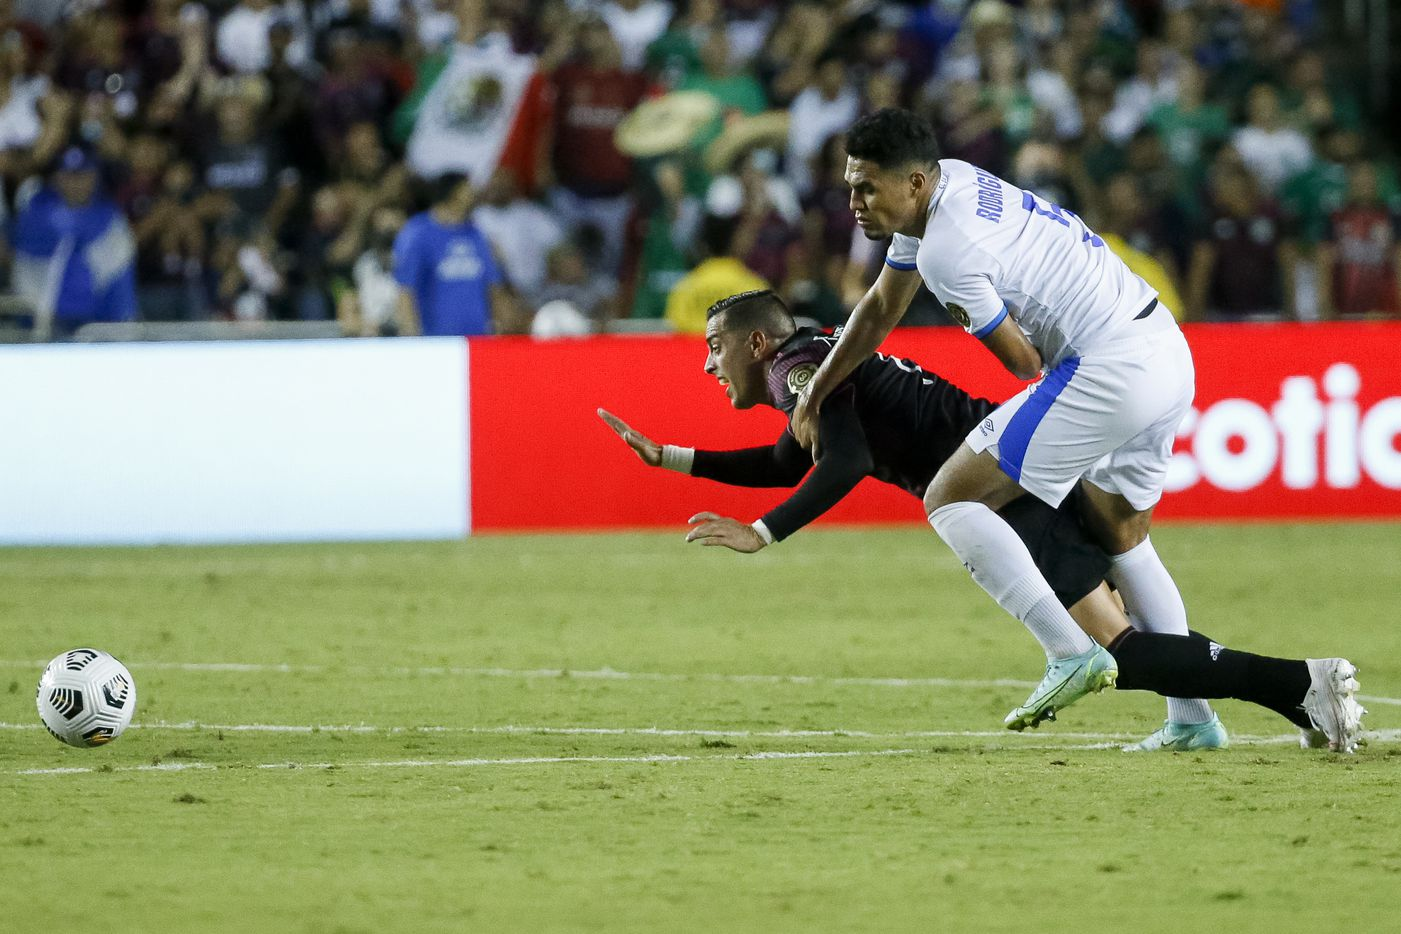 El Salvador defender Ronald Gomez (5) tackles Mexico forward Rogelio Funes Mori (11) during the second half of a CONCACAF Gold Cup Group A soccer match at the Cotton Bowl on Sunday, July 18, 2021, in Dallas. (Elias Valverde II/The Dallas Morning News)